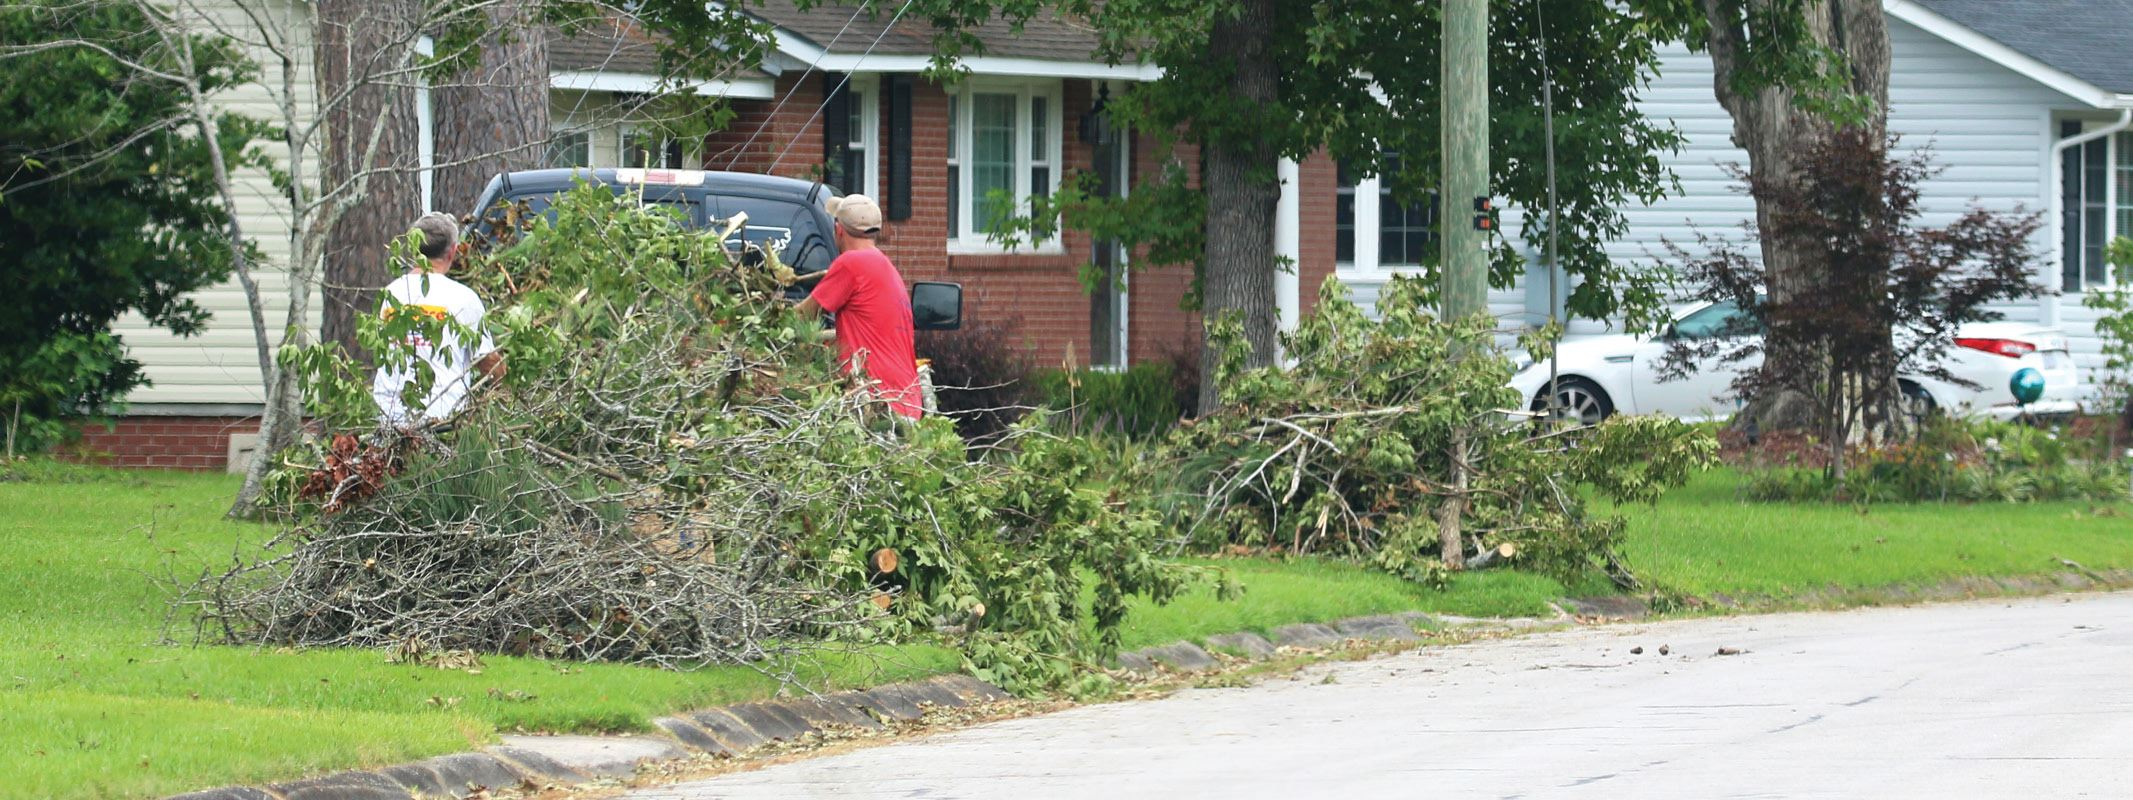 Don't burn yard waste. Crews are out collecting storm debris.